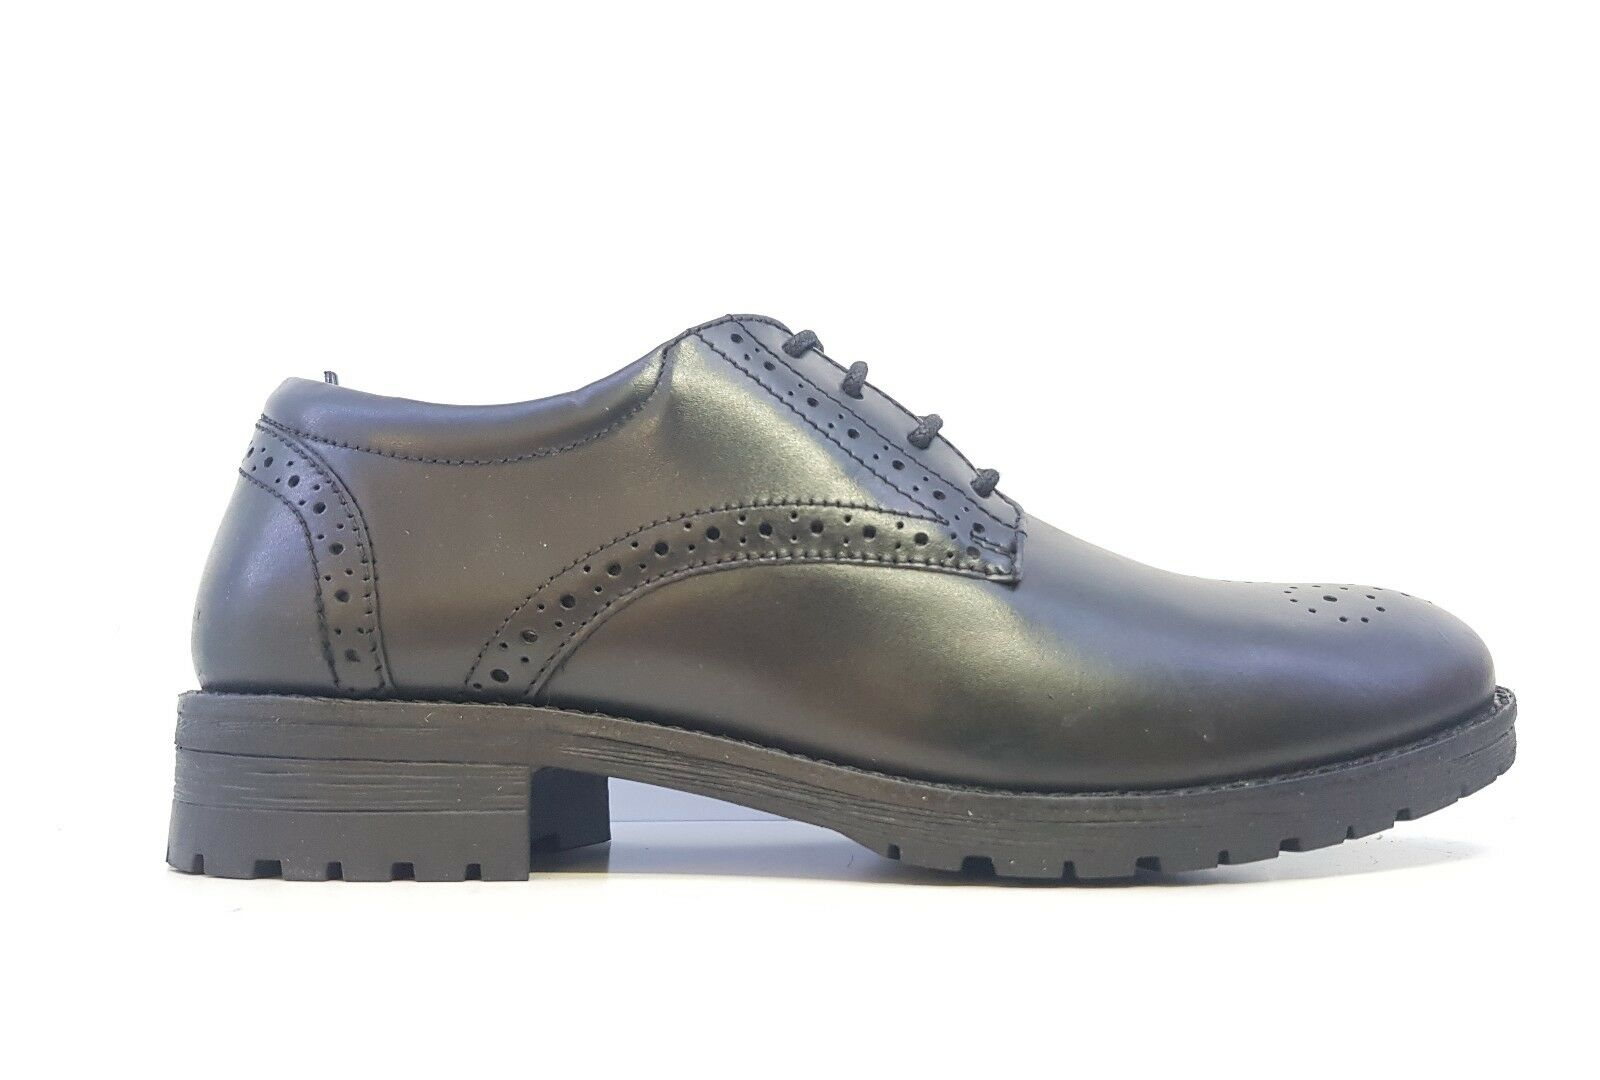 5th Avenue Ladies Black Leather Lace Up Brogues Size UK 4